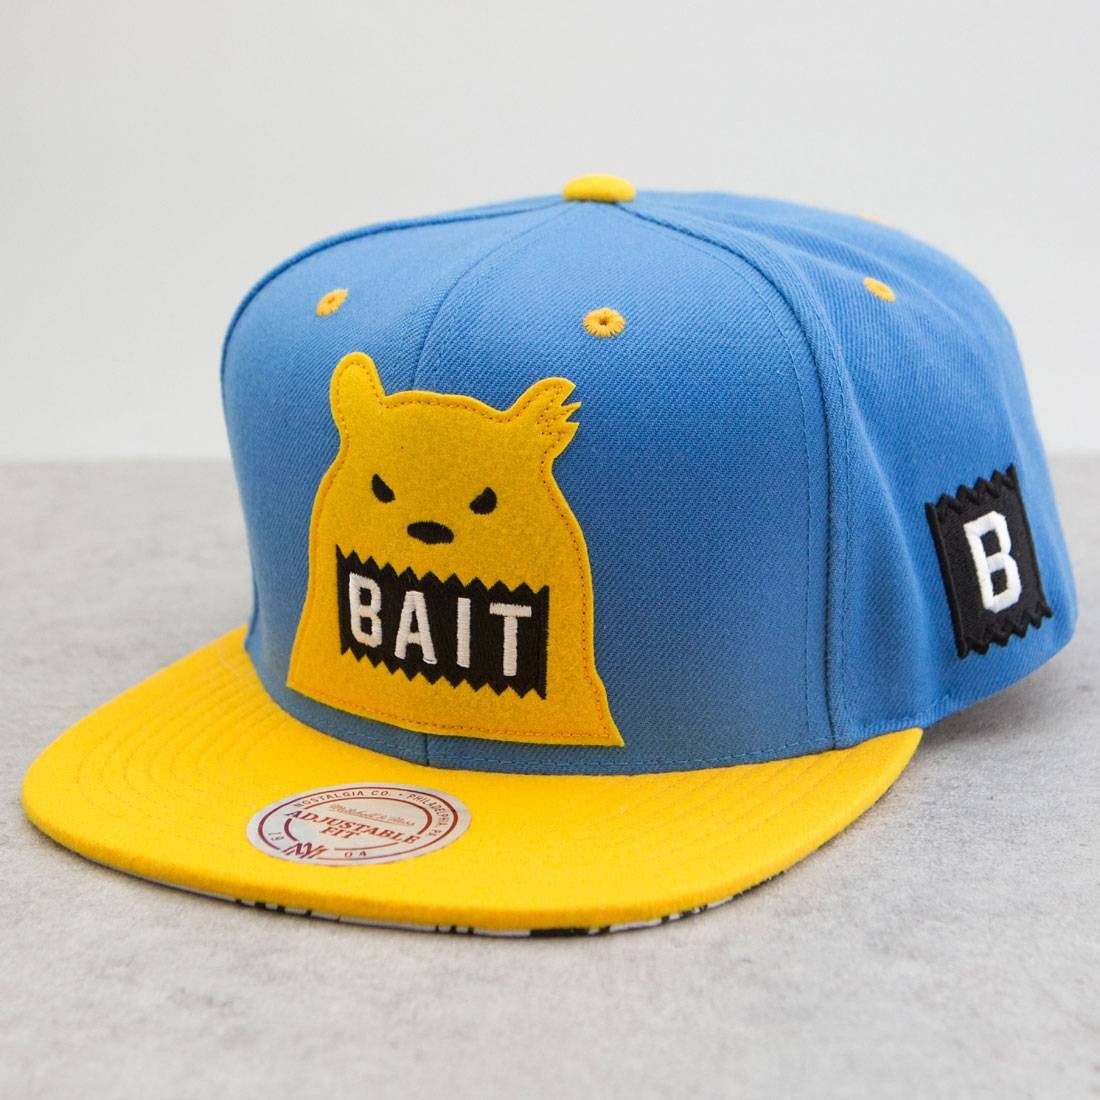 BAIT x Mitchell And Ness Bear Snapback Cap (blue / gold)